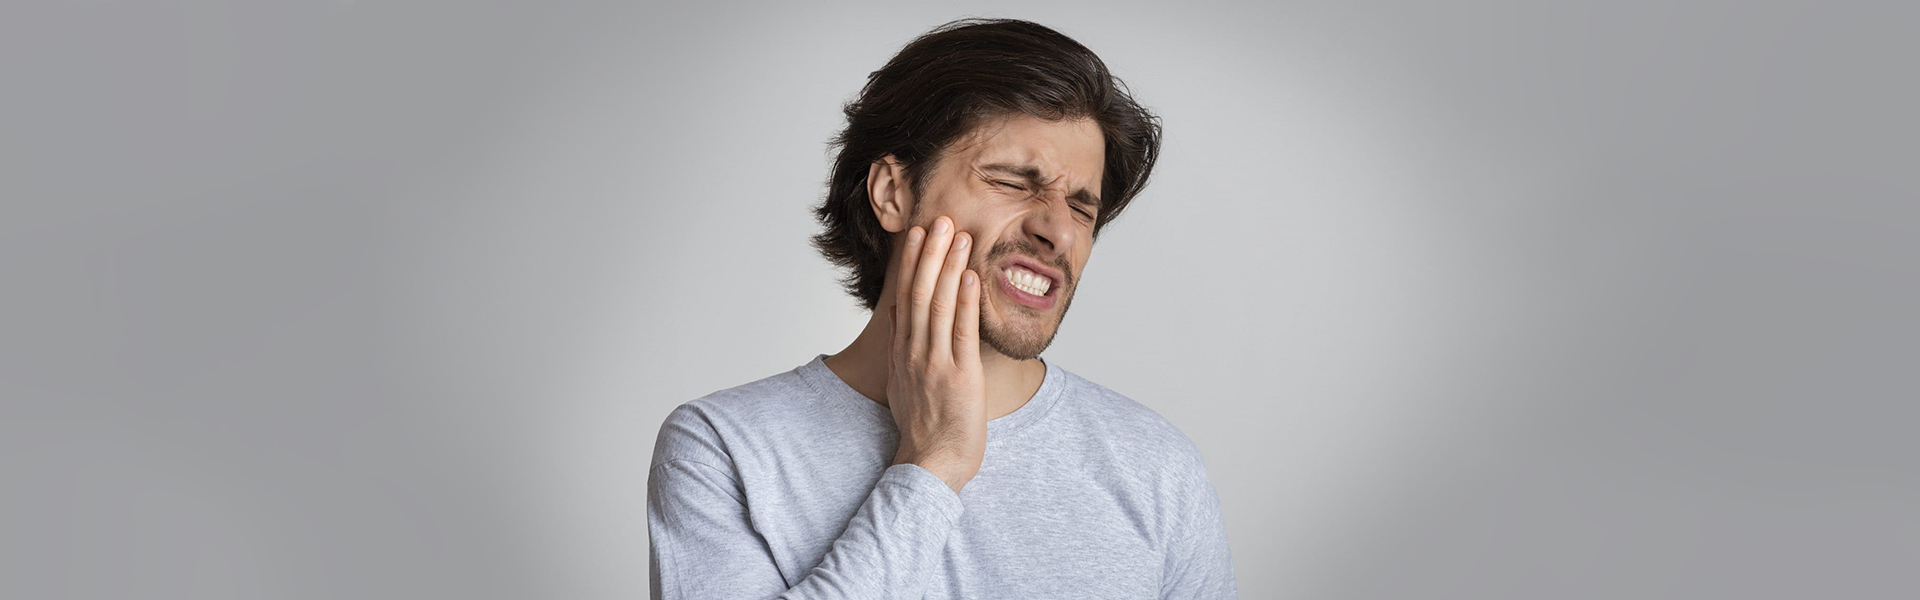 Tips to Help You Stop Teeth Clenching